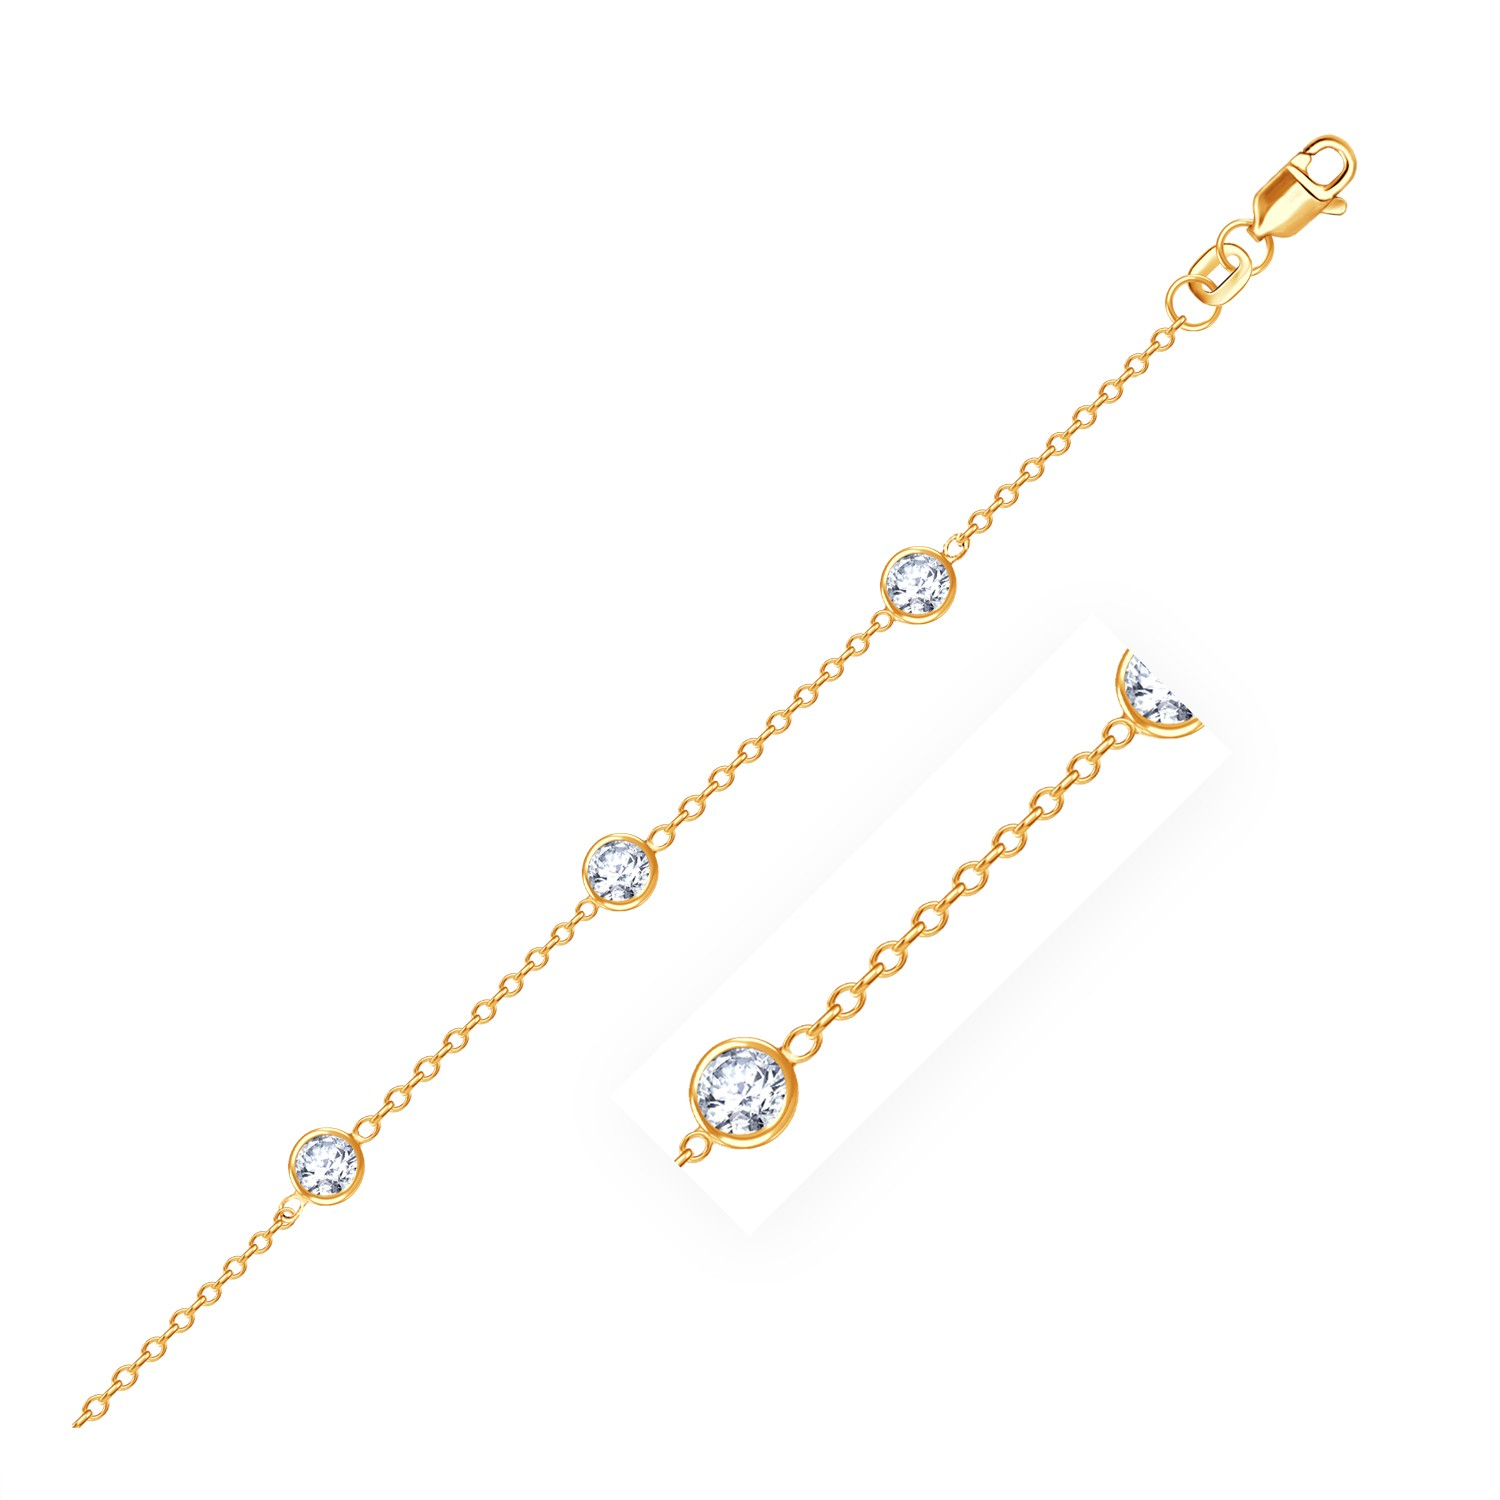 chain yg anklet beaded diamond cut yellow rubystella gold